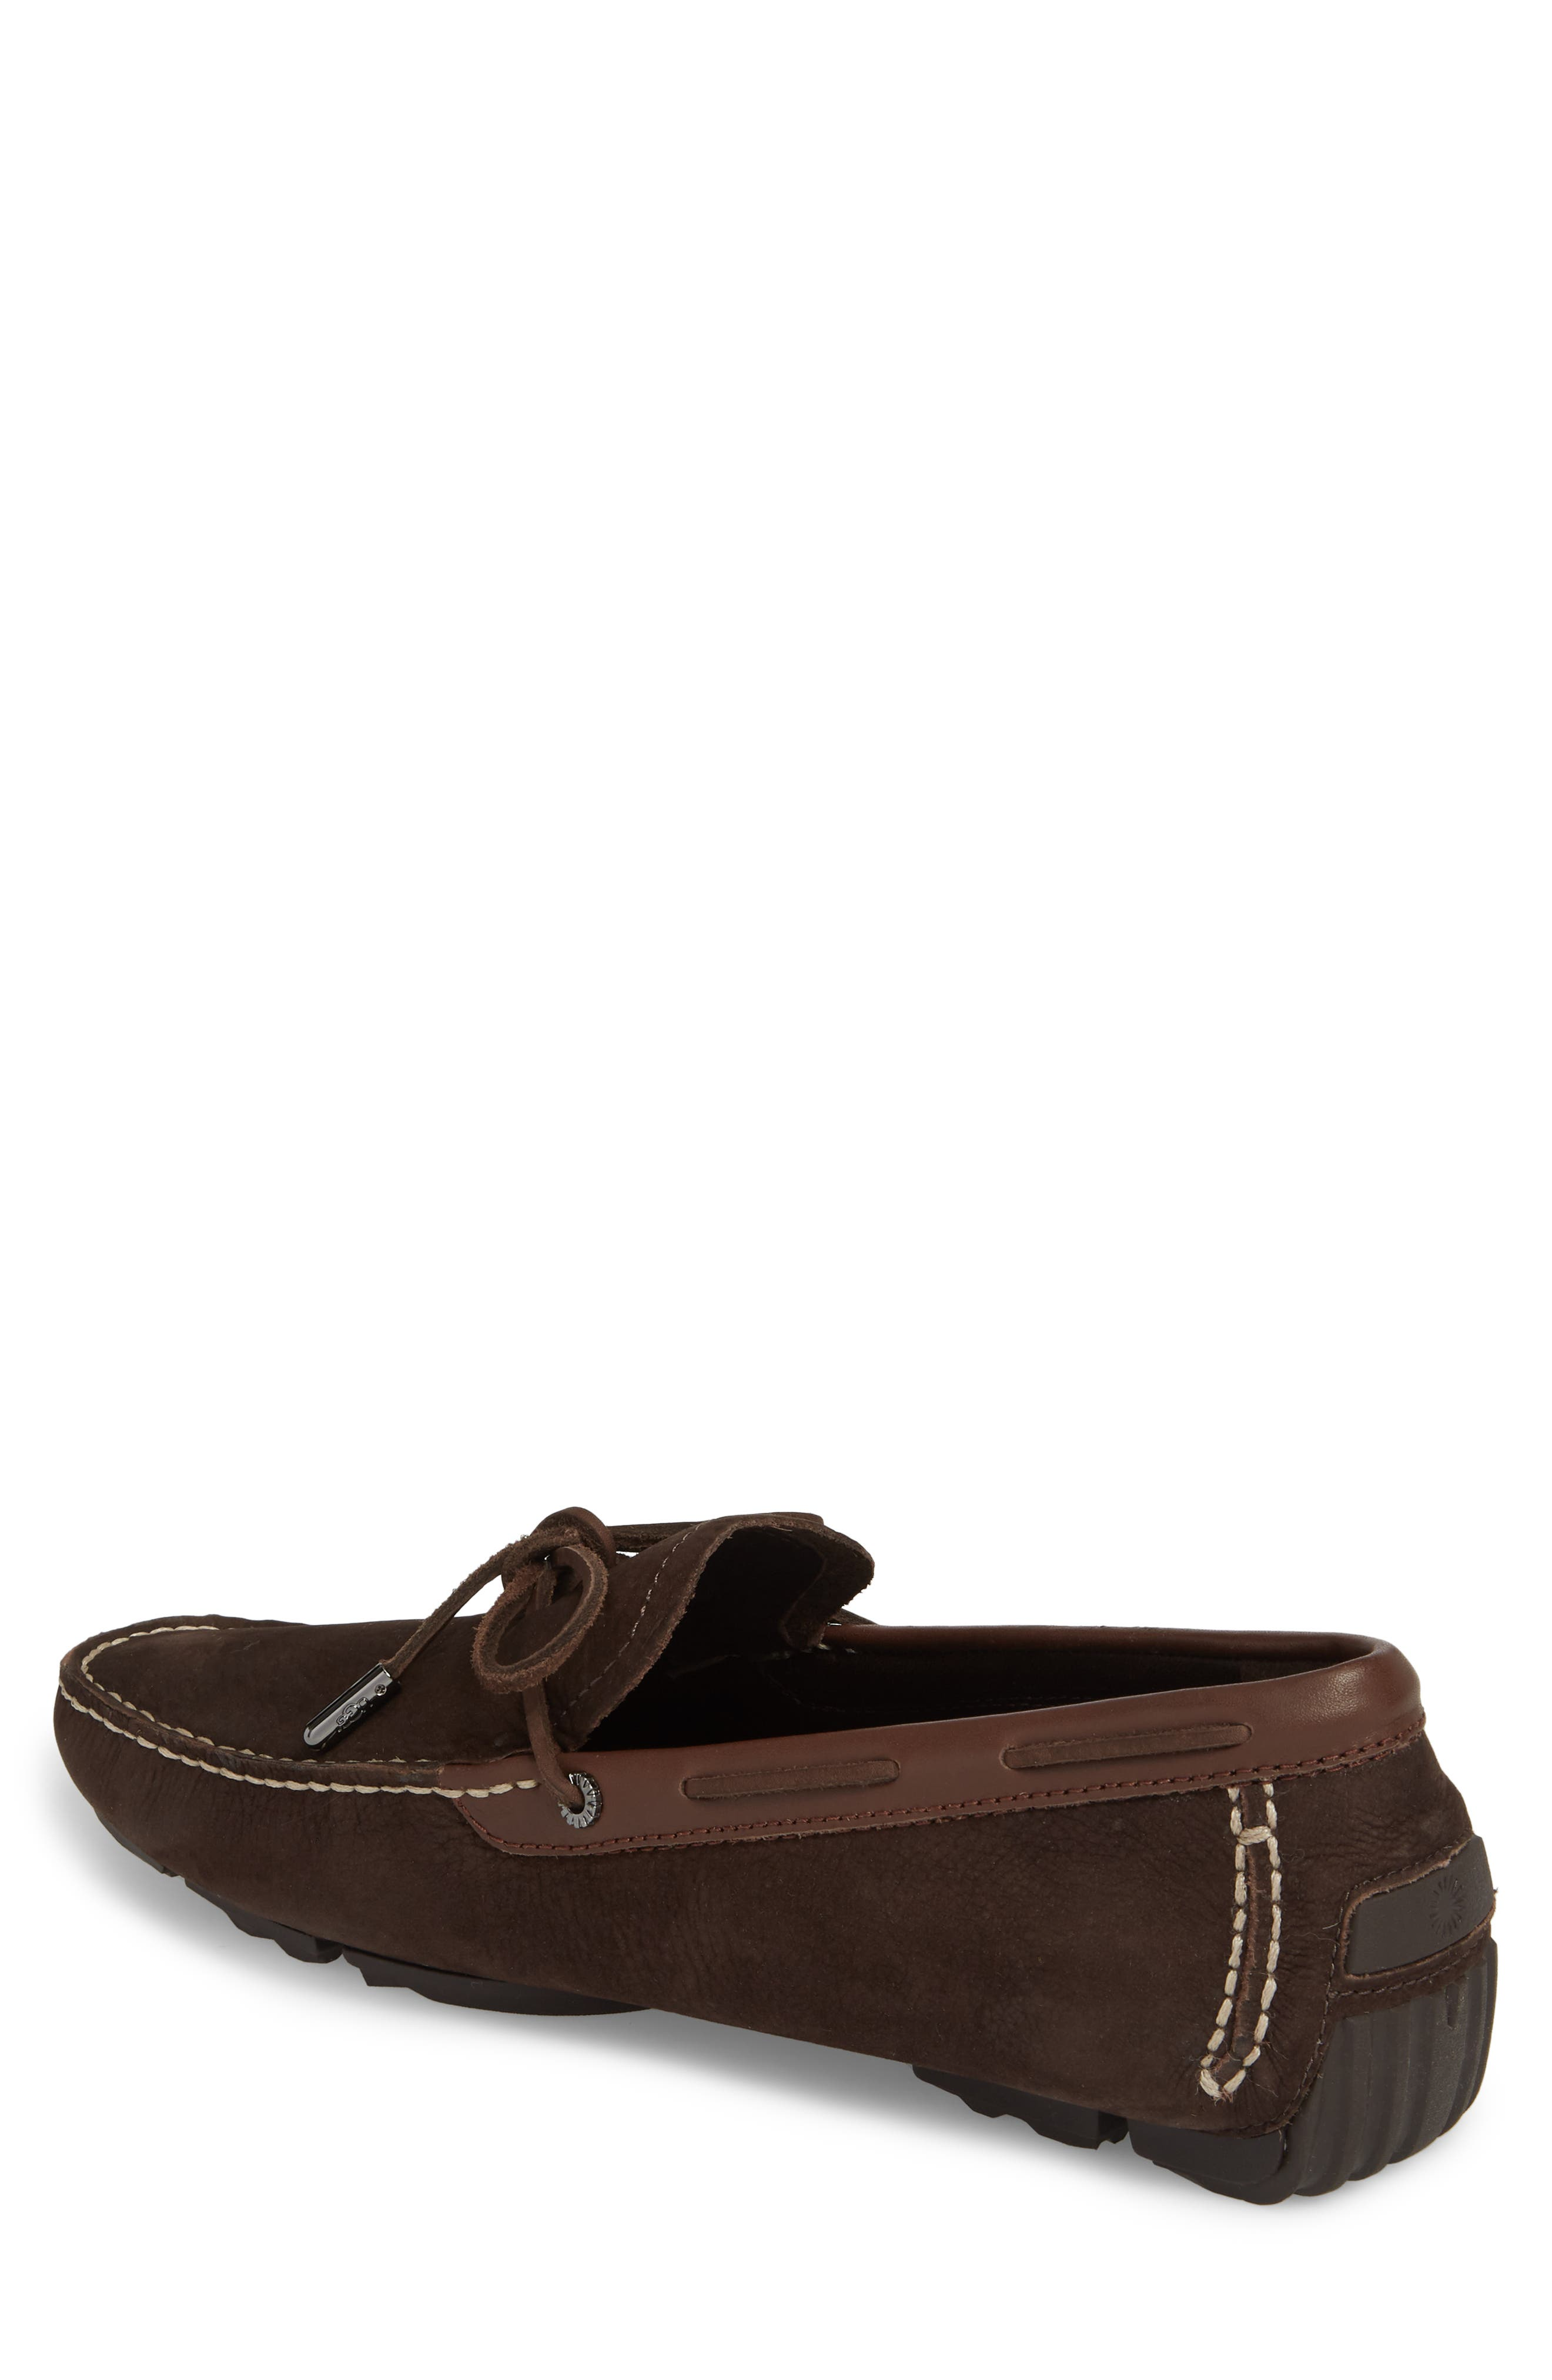 Bel Air Driving Moccasin,                             Alternate thumbnail 2, color,                             STOUT LEATHER